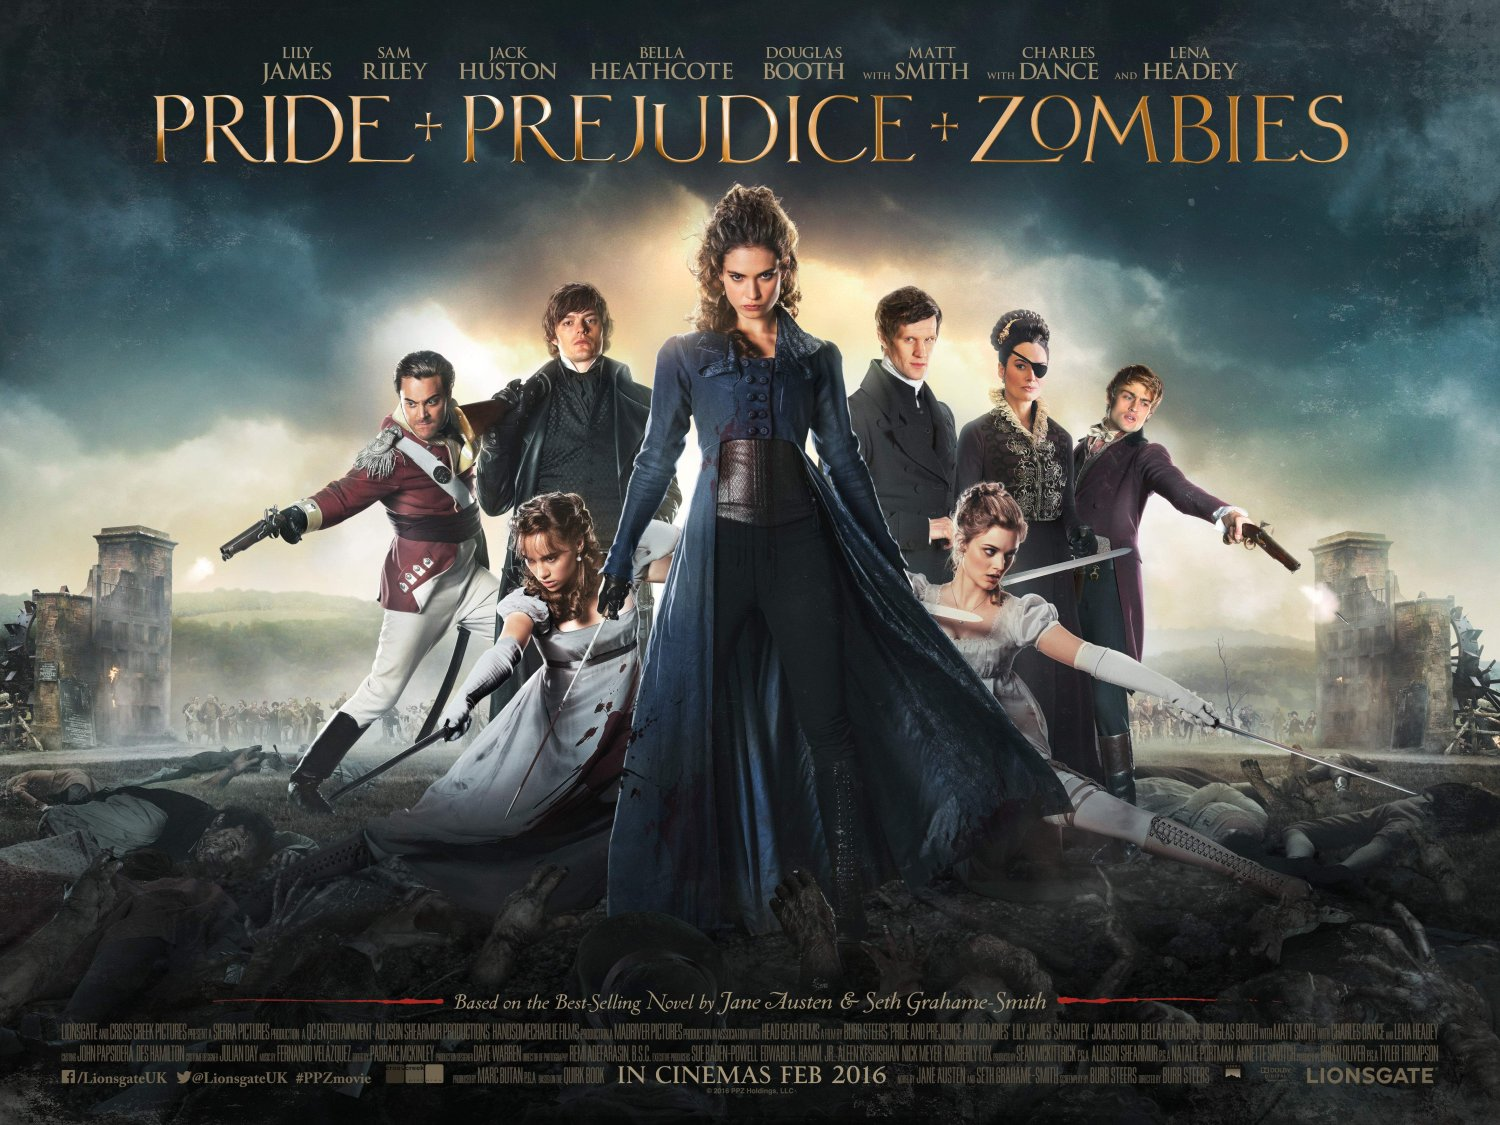 PRIDE AND PREJUDICE AND ZOMBIES quad poster